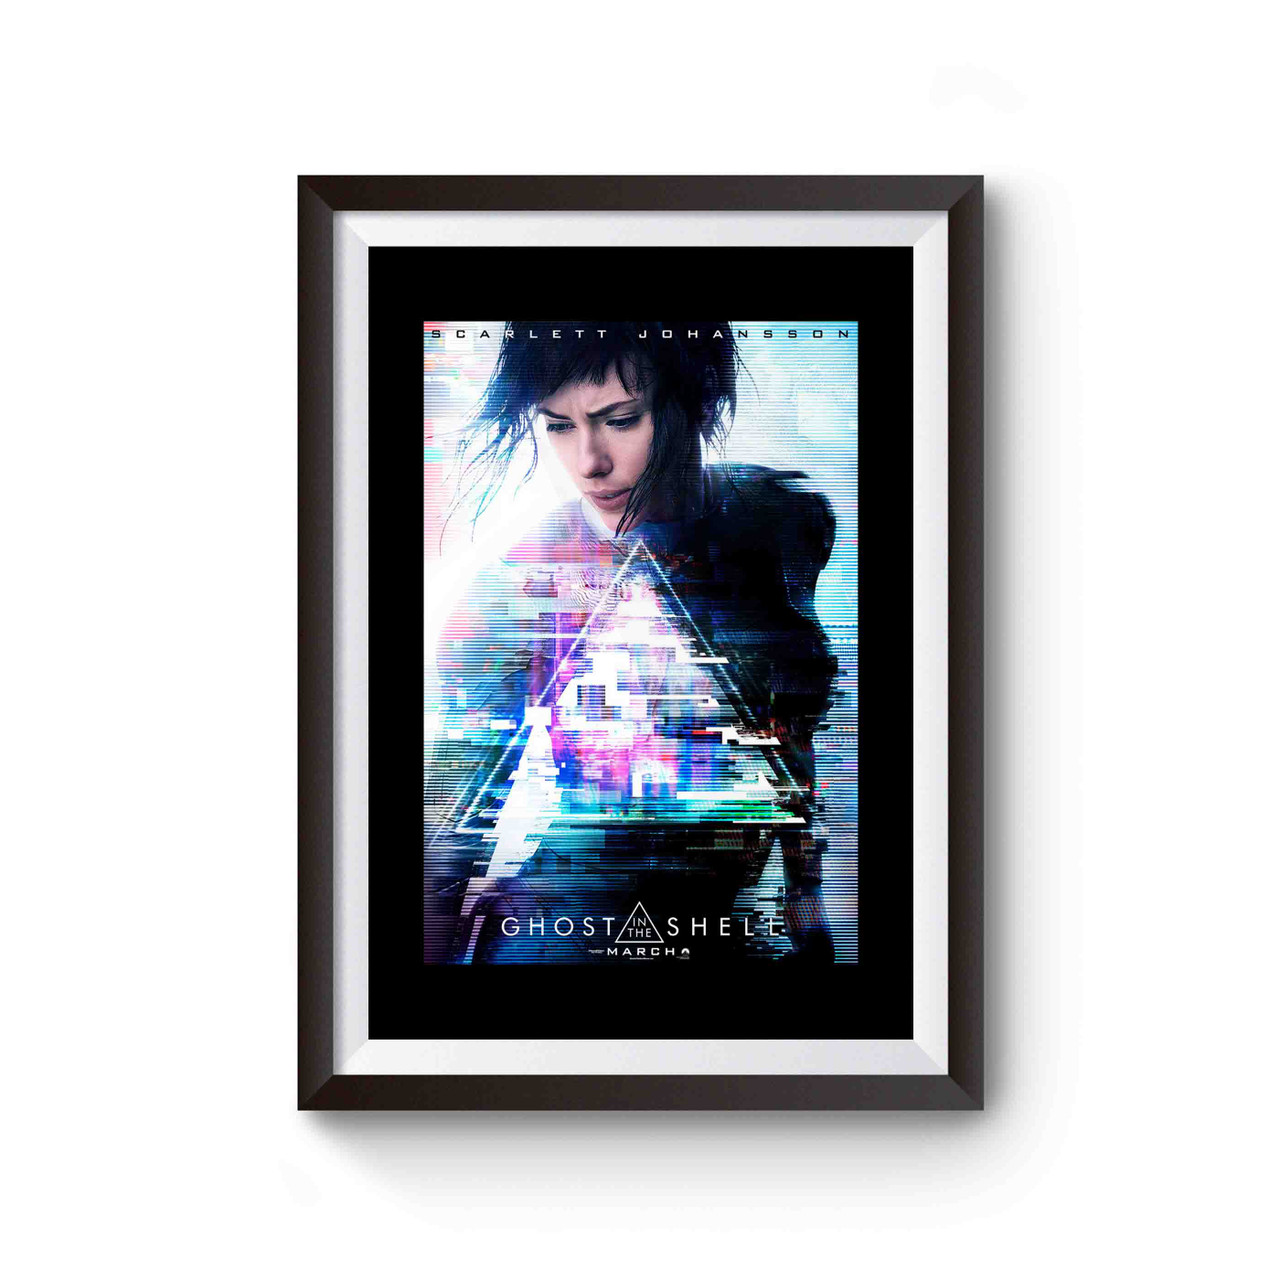 Ghost In The Shell Japan Anime Poster Movie Scarlett Johansson 5 Poster